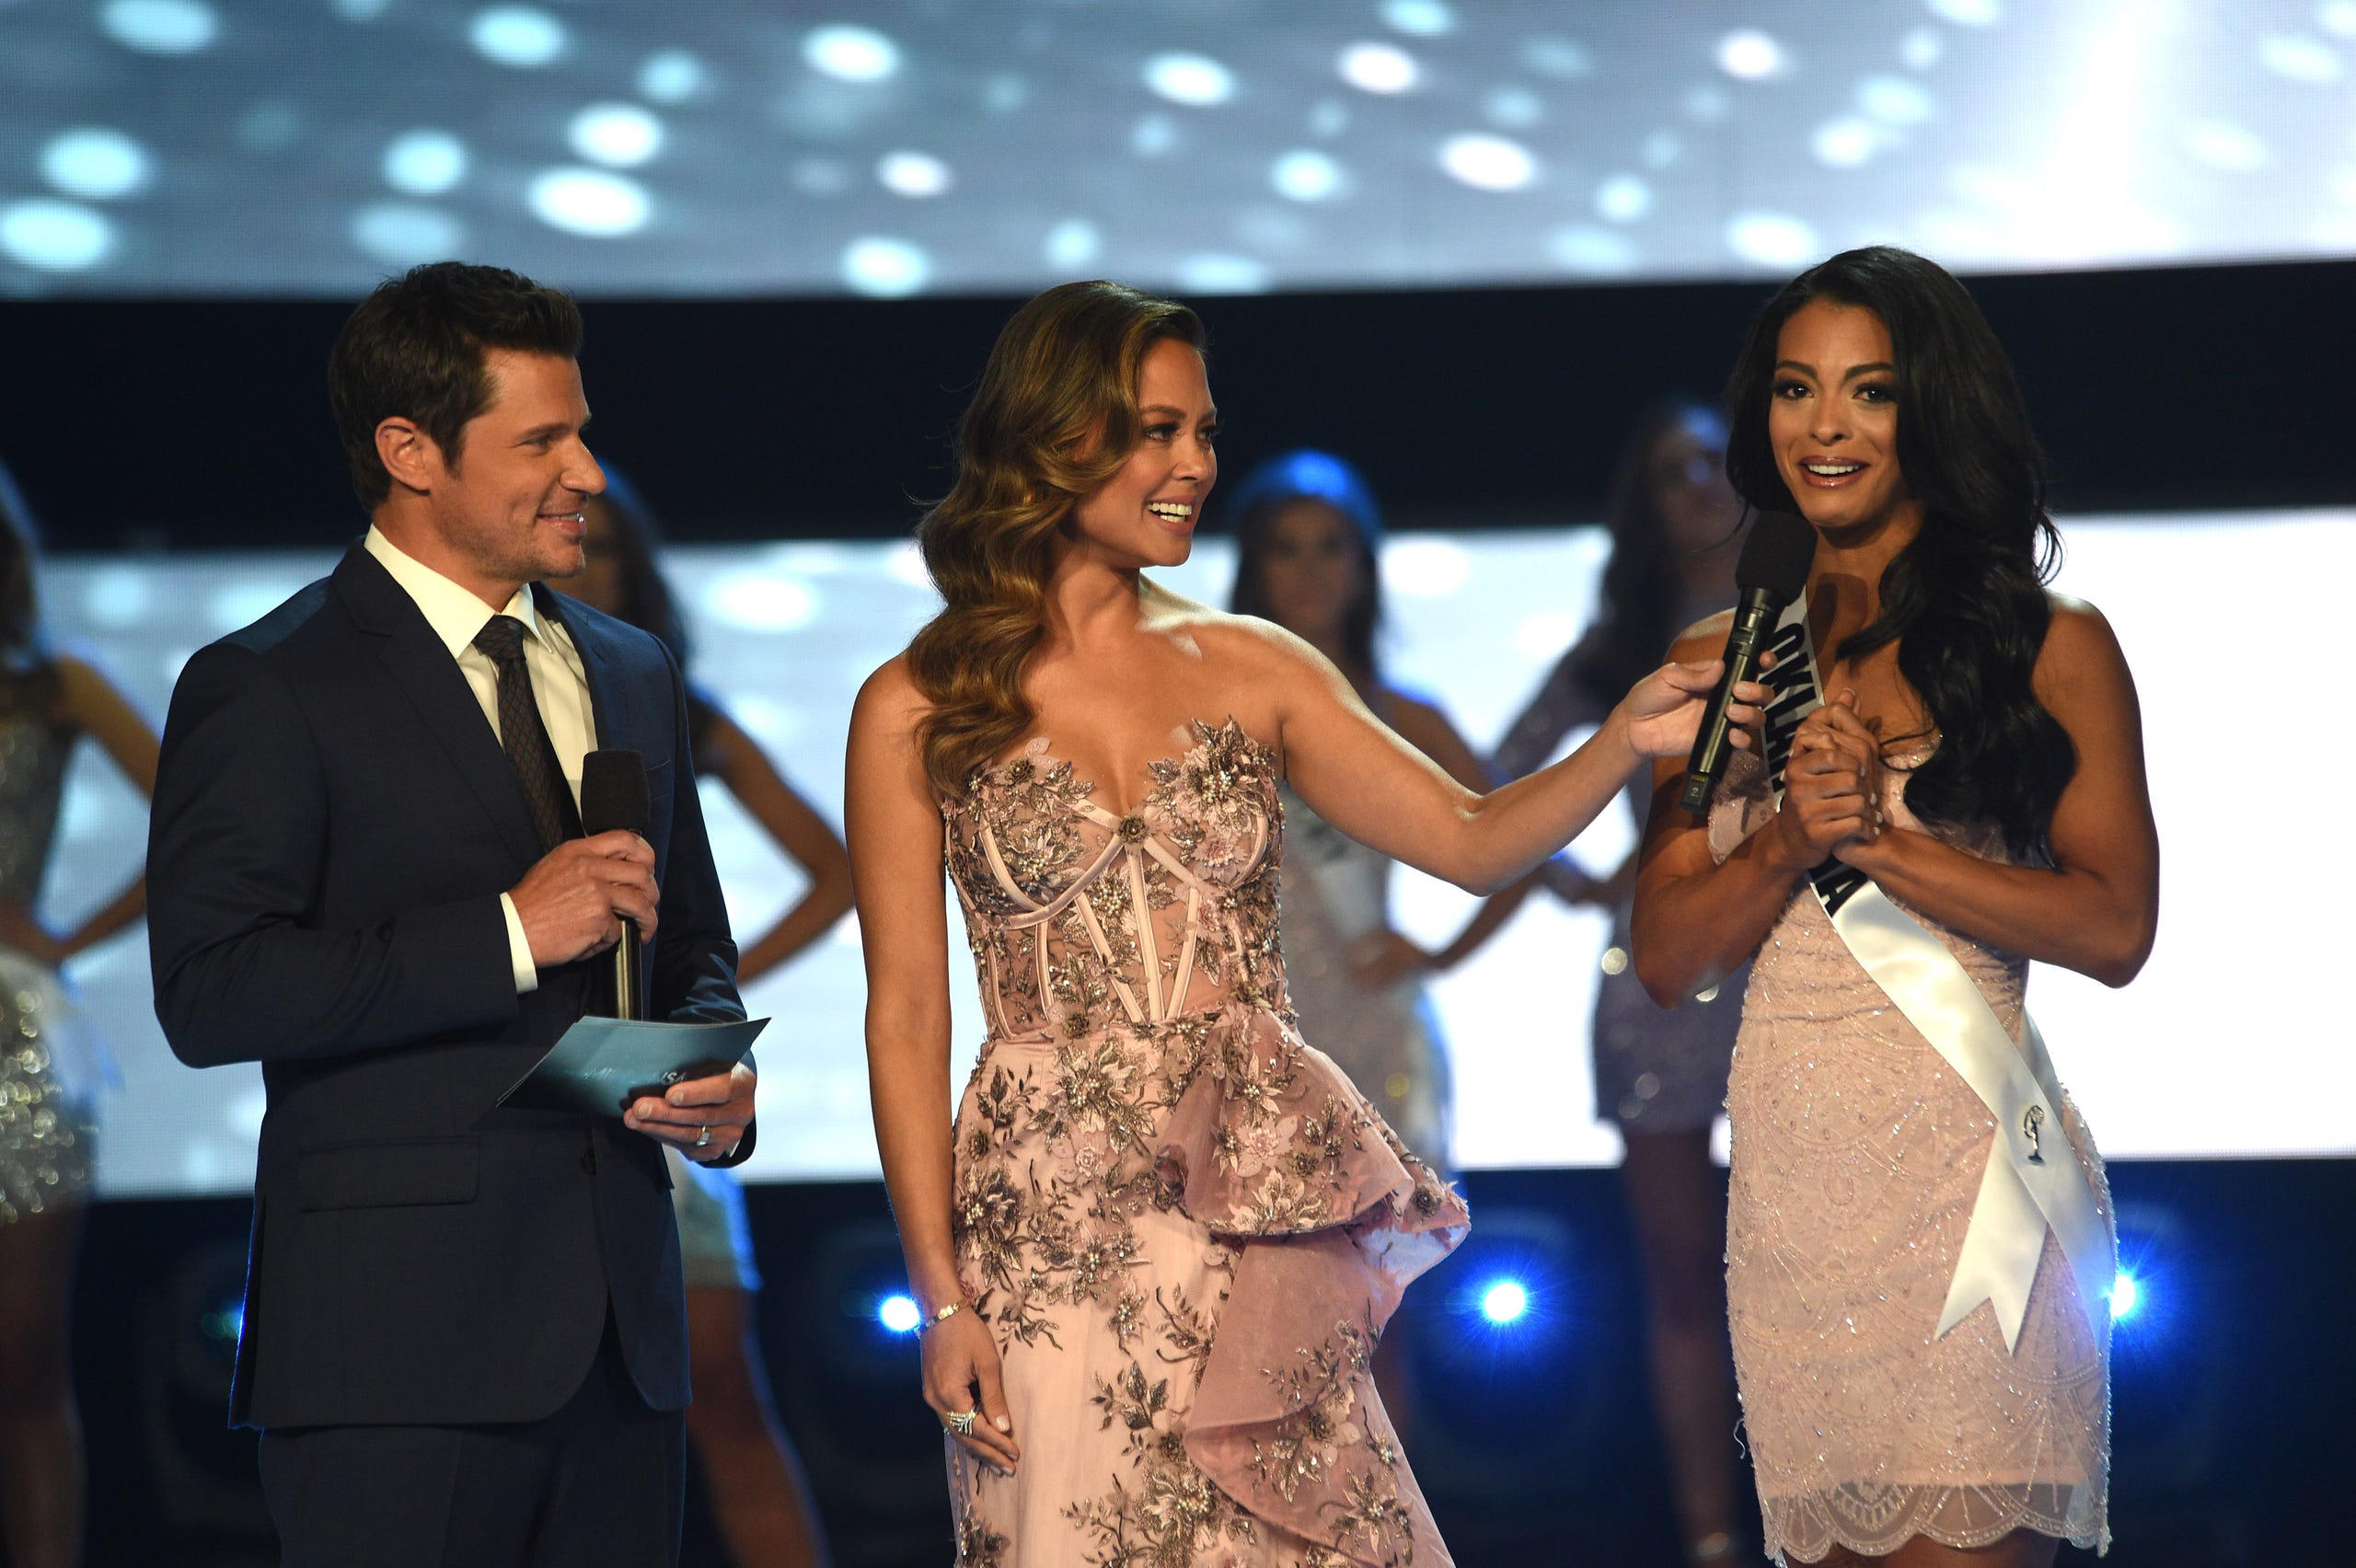 Co-hosts Vanessa and Nick Lachey talk with Triana Browne, Miss Oklahoma, during Miss USA 2019.